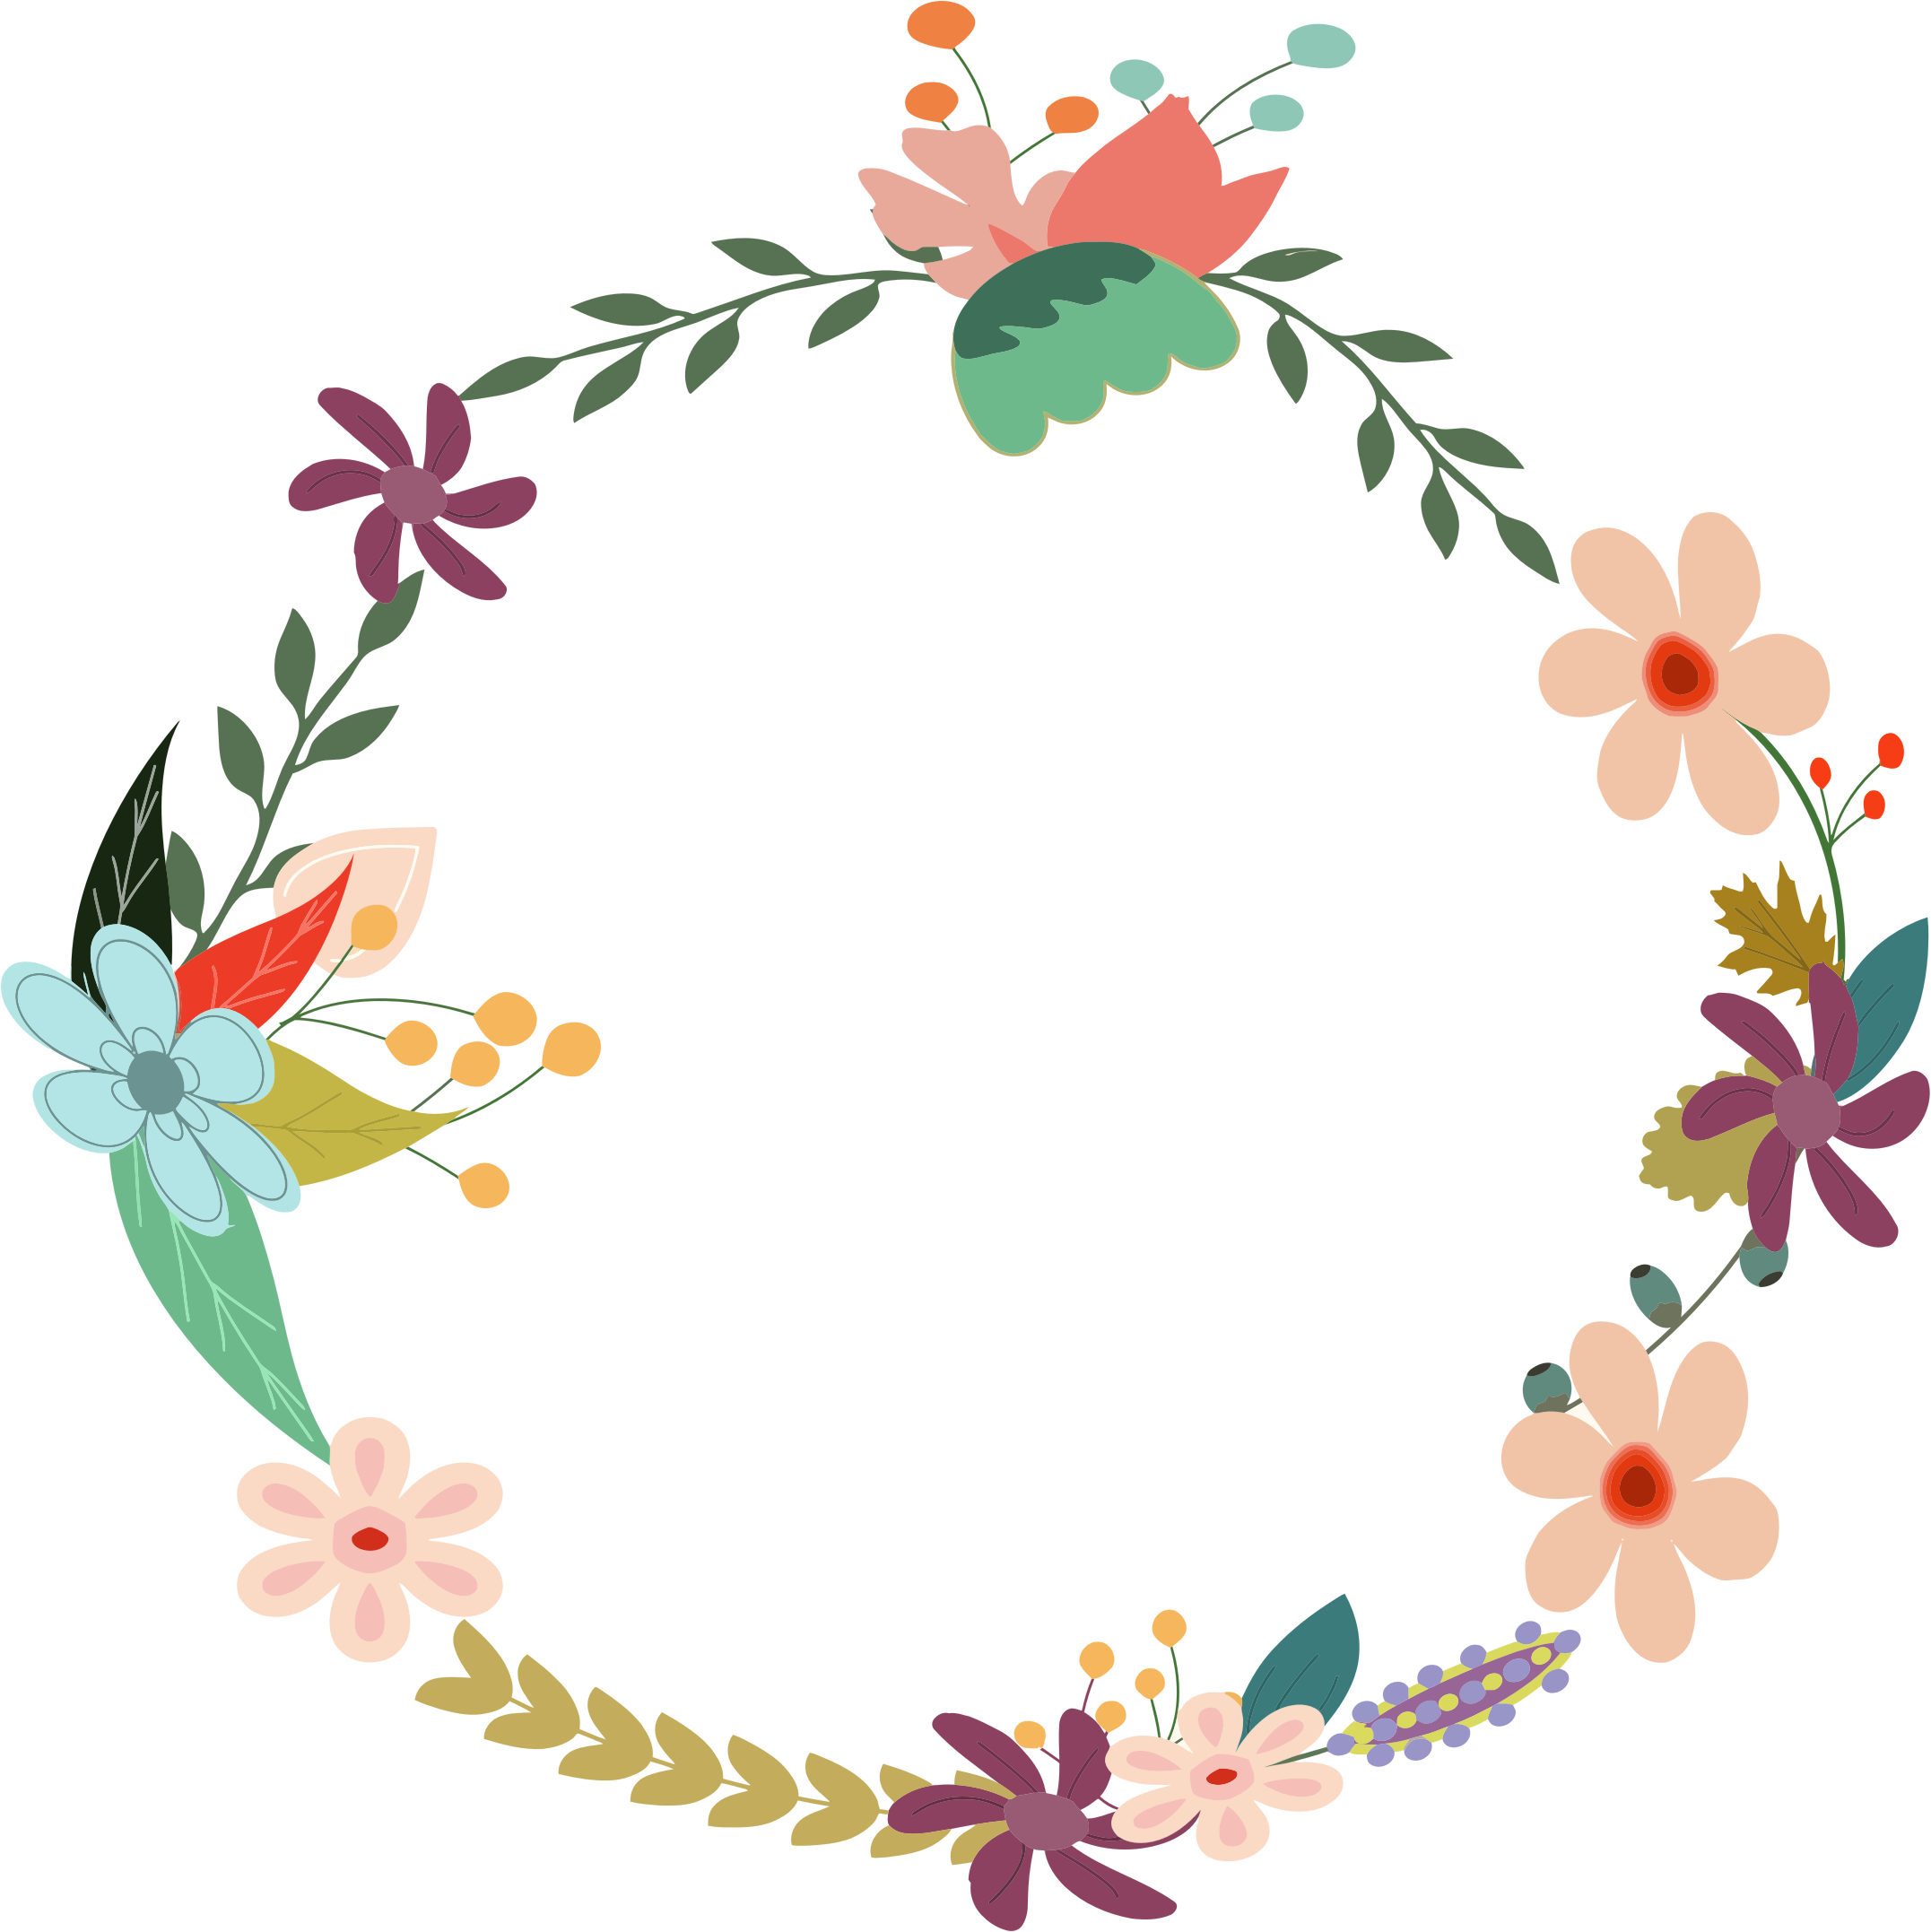 Vintage floral by gdj. Circle clipart wreath